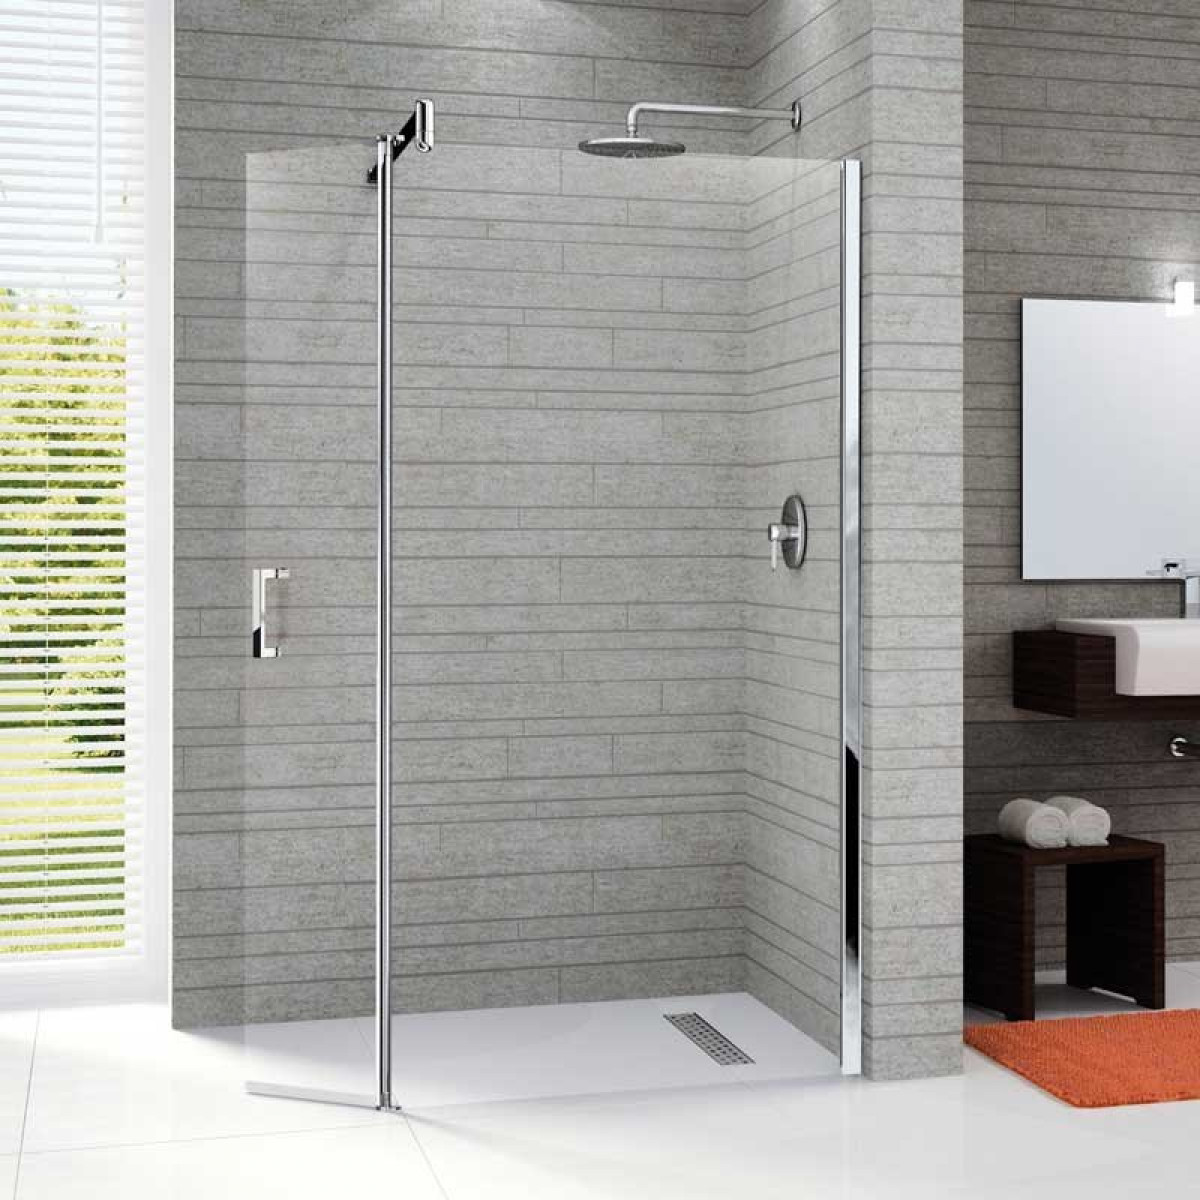 Novellini Go 2 Pivot & Straight 680mm Walk in Shower Panel | GON268-1K